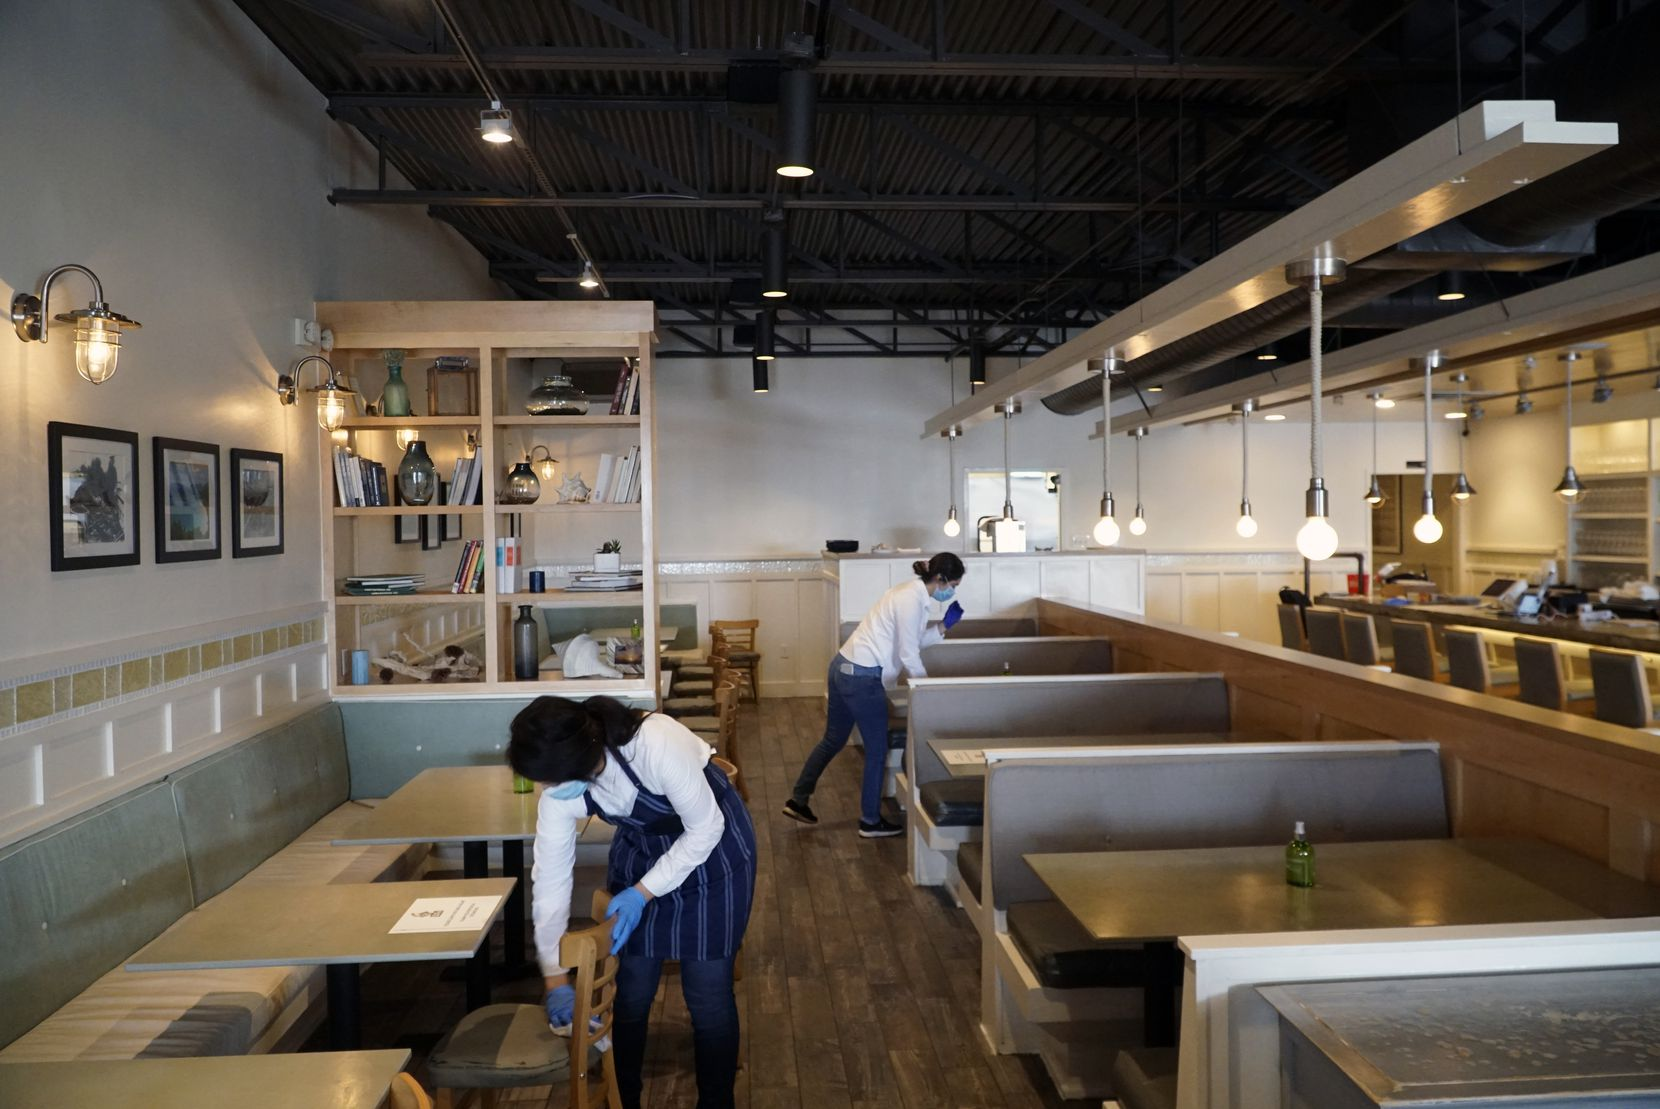 TJ's Seafood employees clean chairs and tables in preparation for reopening the inside to the public at the restaurant in Dallas, Texas on Friday, May 15, 2020. Every other table will be used for social distancing and hand sanitizer will be at each table.